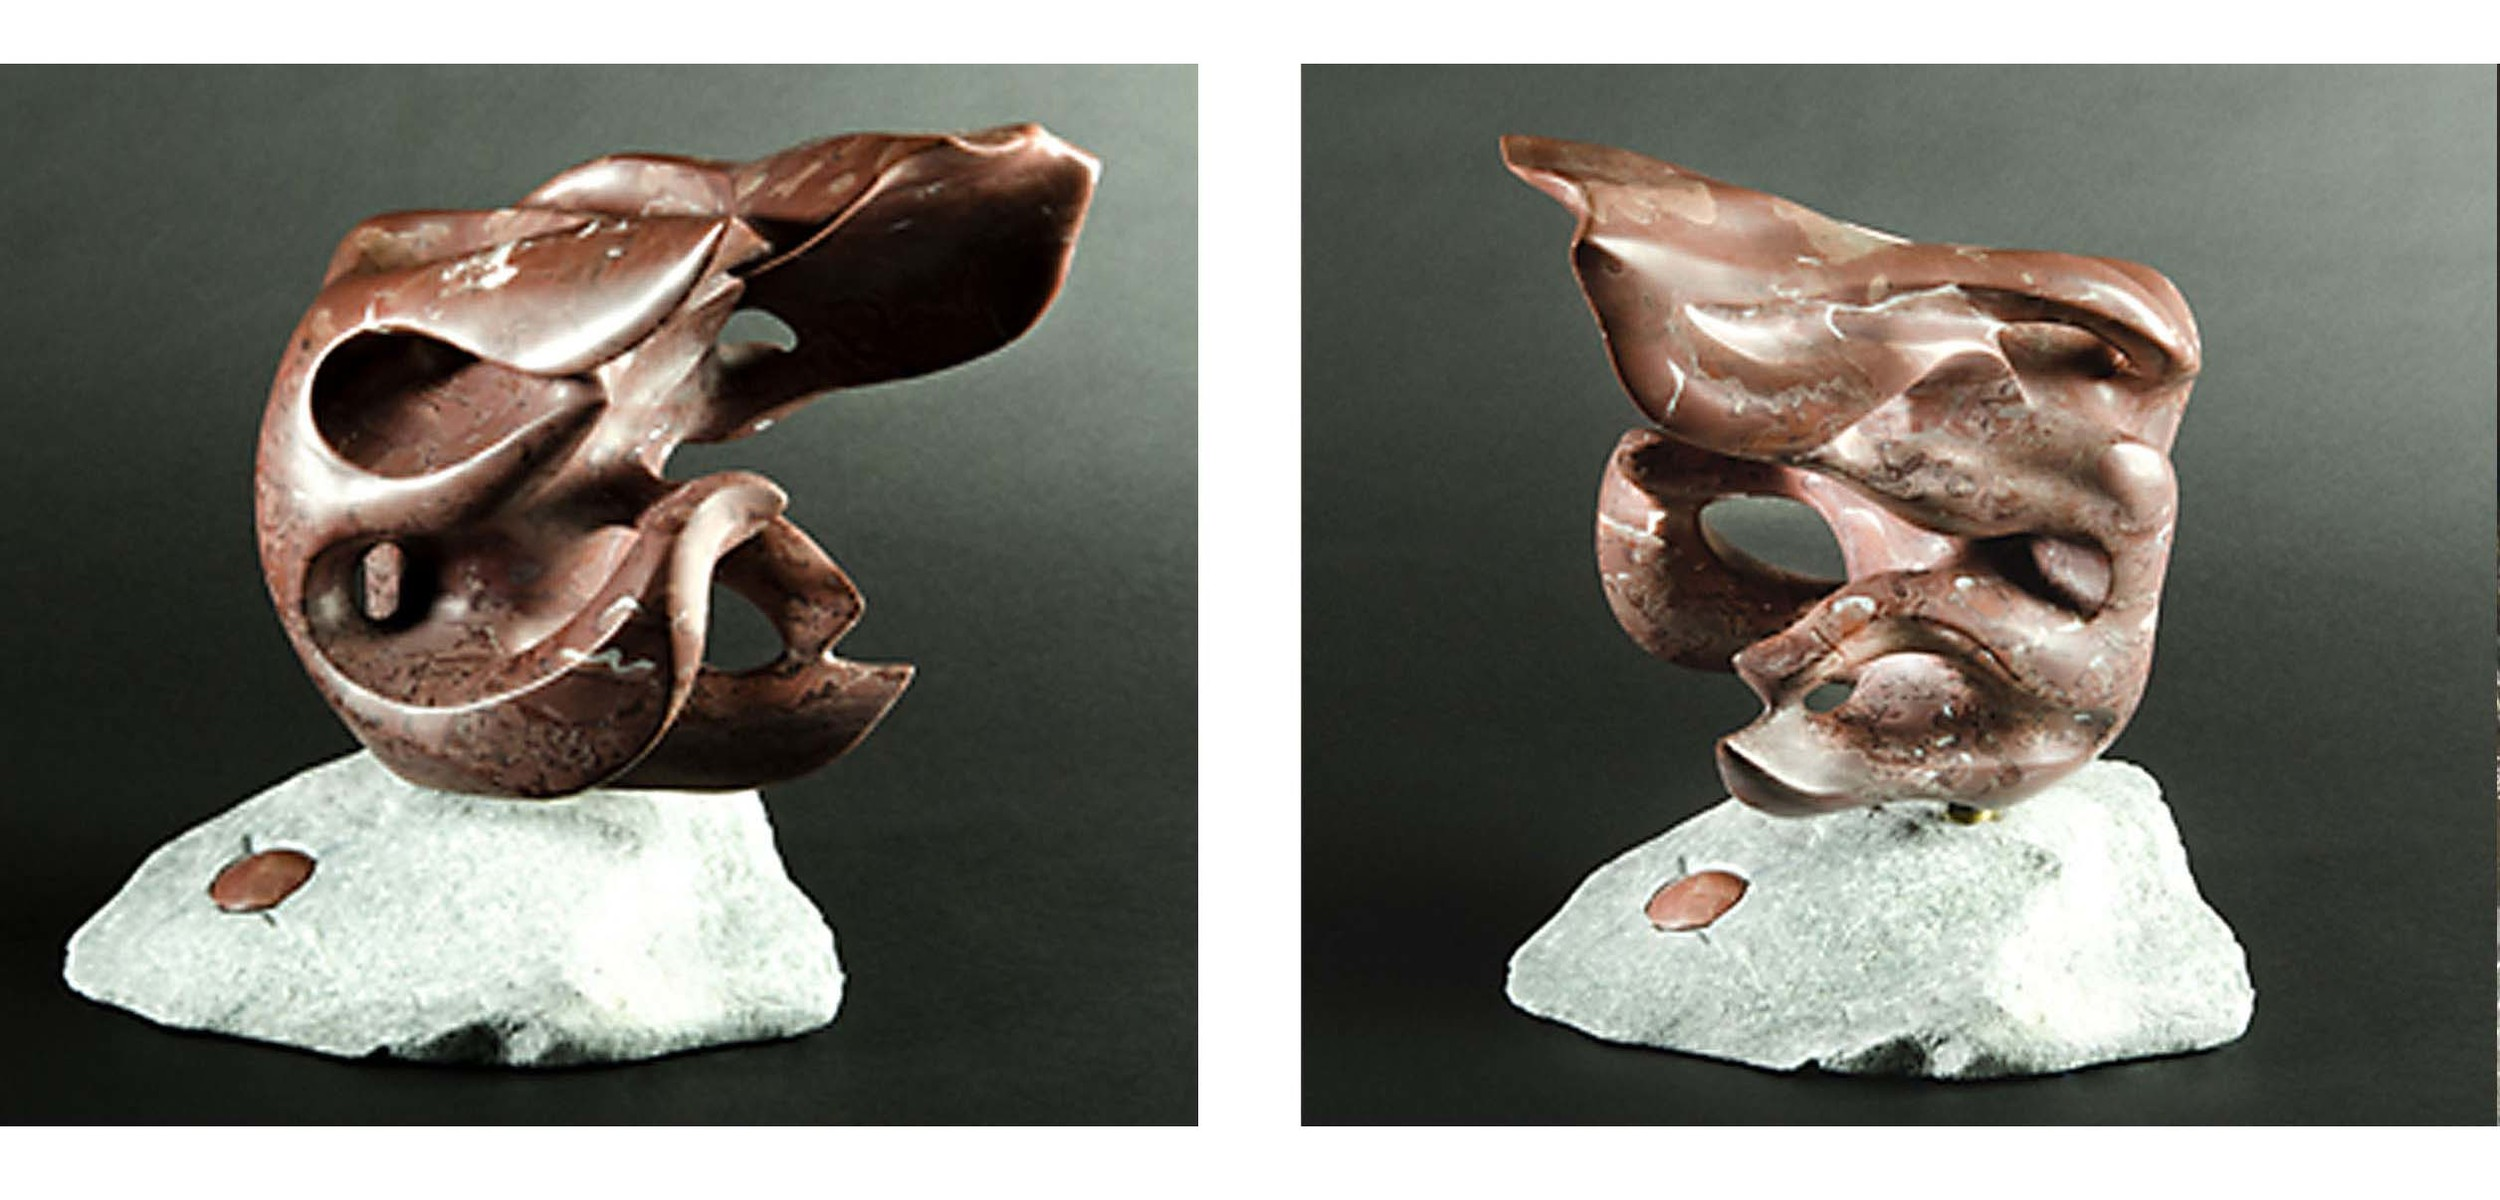 Fingers of the Wind - 14 x 12 x 12 inches - Swanton Red marble - private collection